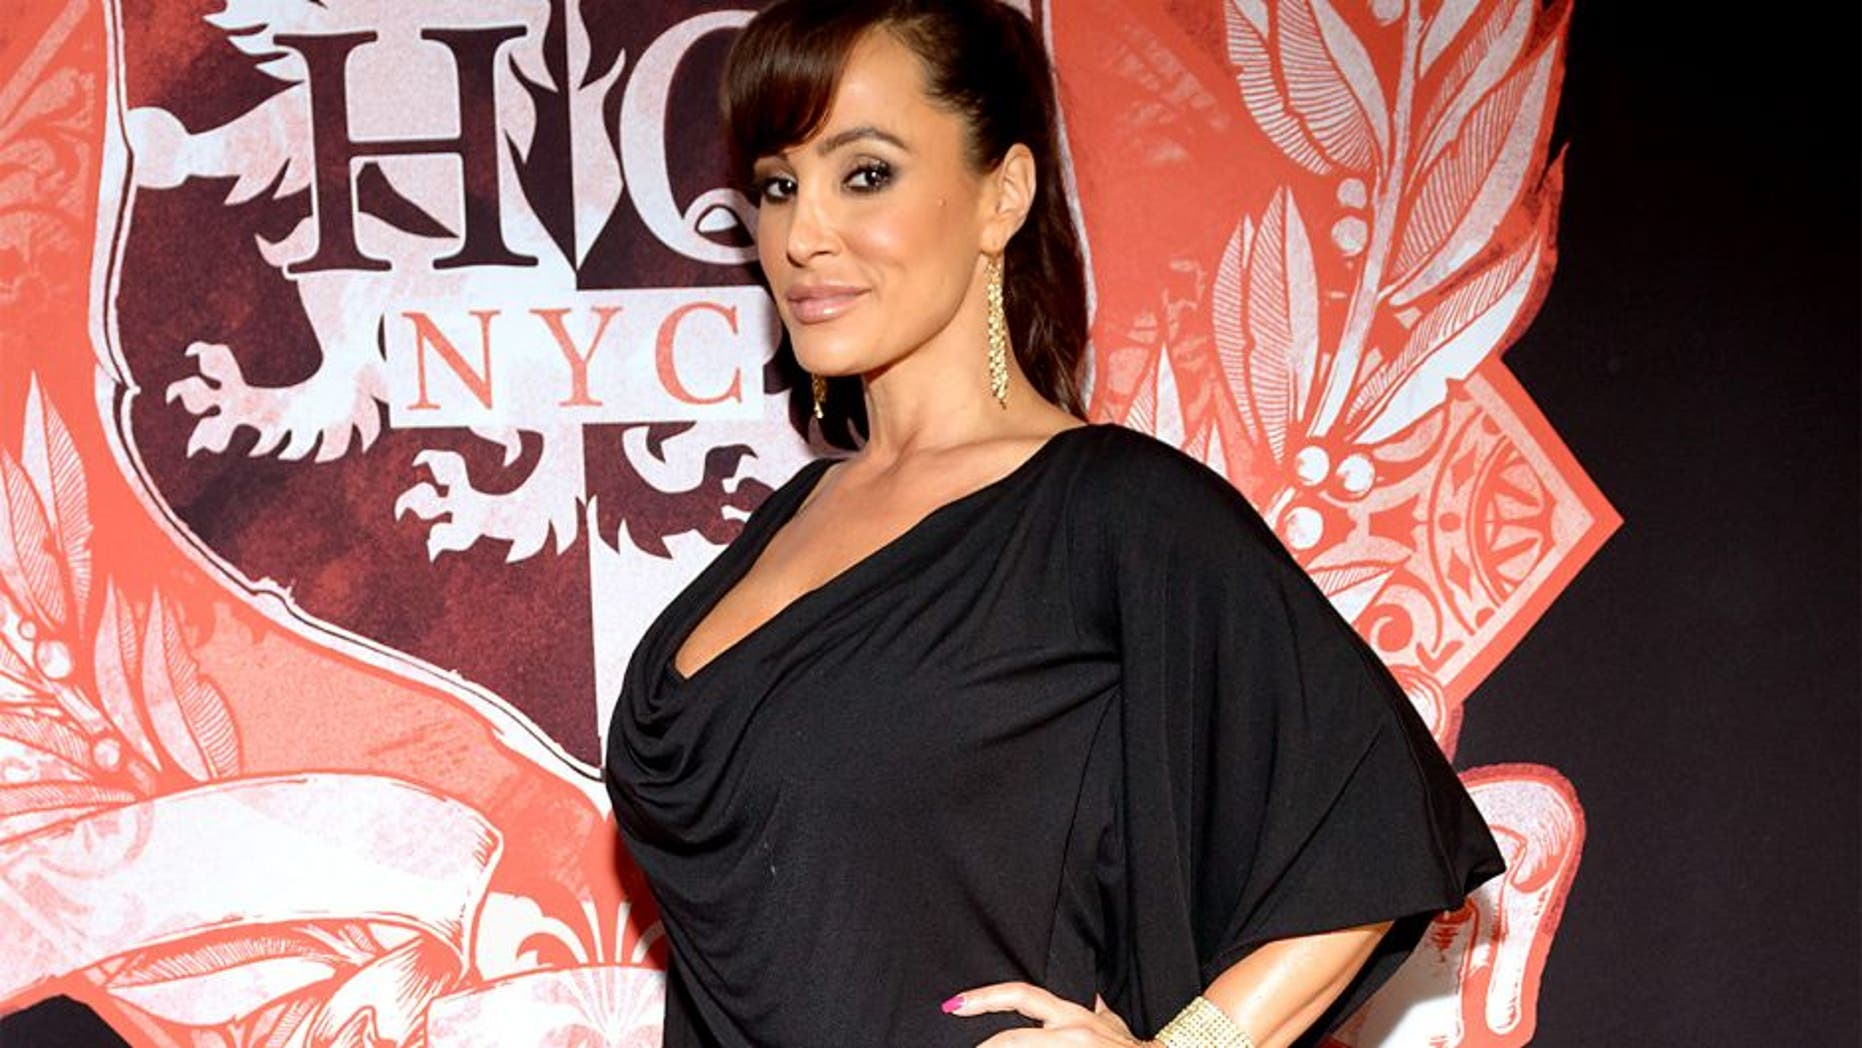 NEW YORK, NY - SEPTEMBER 20: Adult actress Lisa Ann visits Headquarters on September 20, 2012 in New York City. (Photo by Michael Stewart/WireImage)